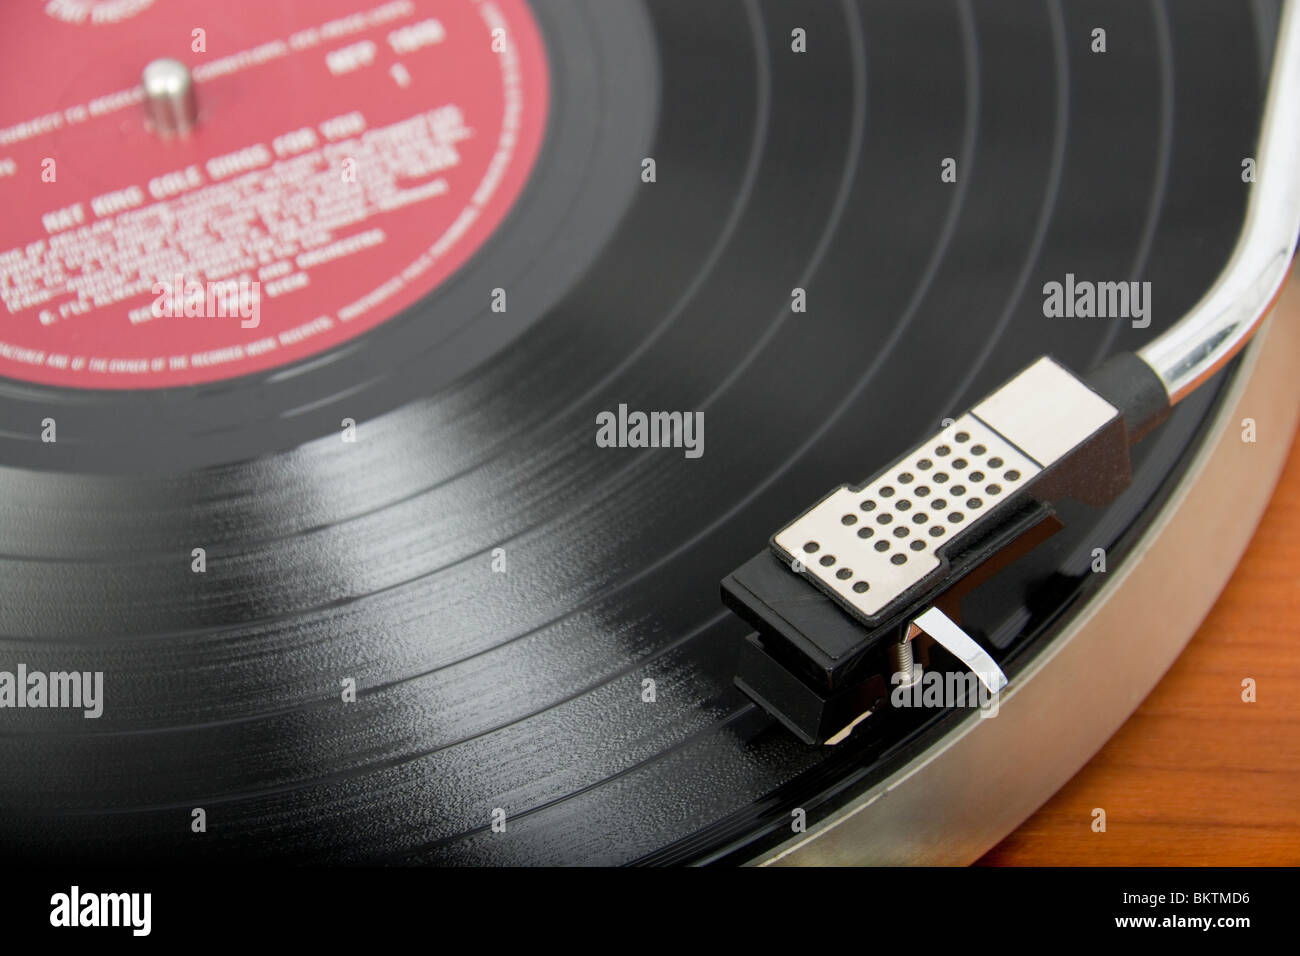 Close-up of vinyl record playing on vintage Garrard turntable - Stock Image